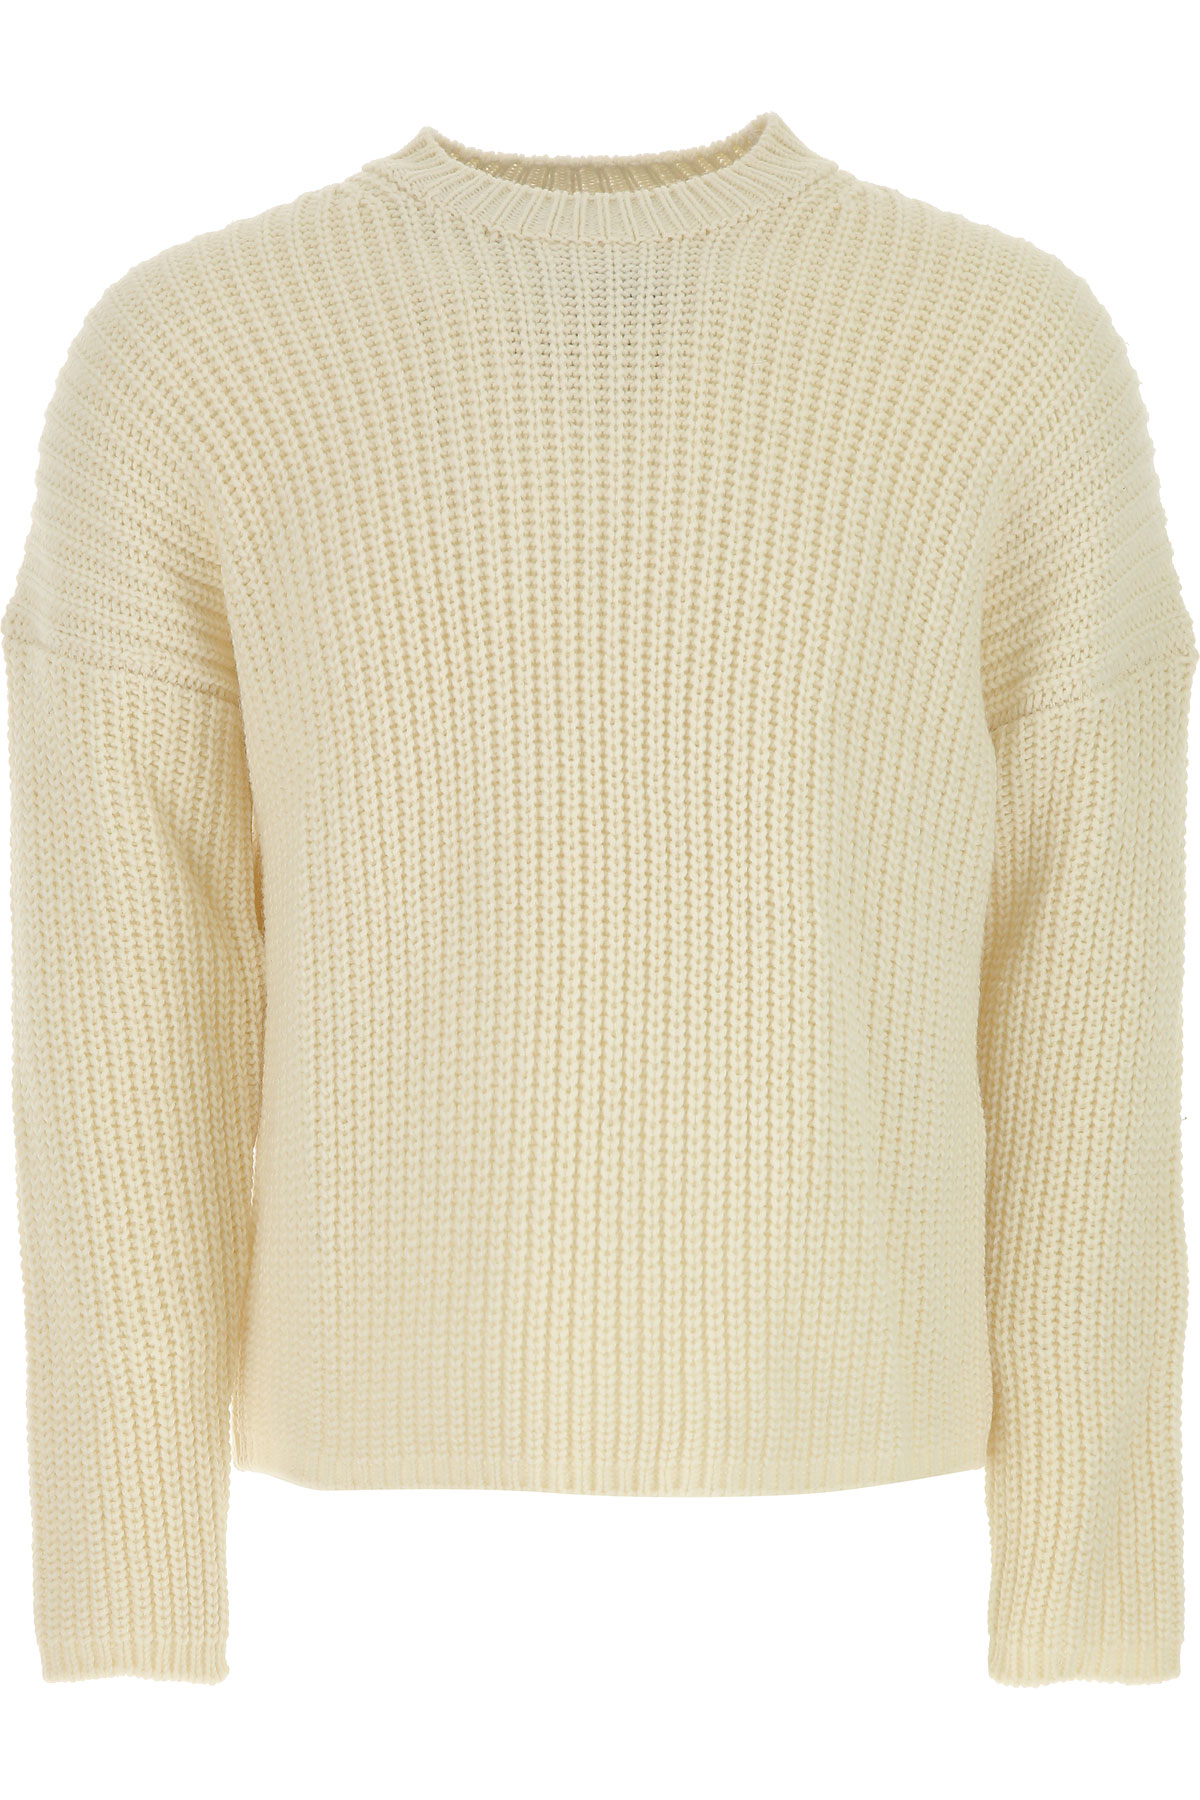 MSGM Sweater for Men Jumper On Sale in Outlet, White, Wool, 2017, L S